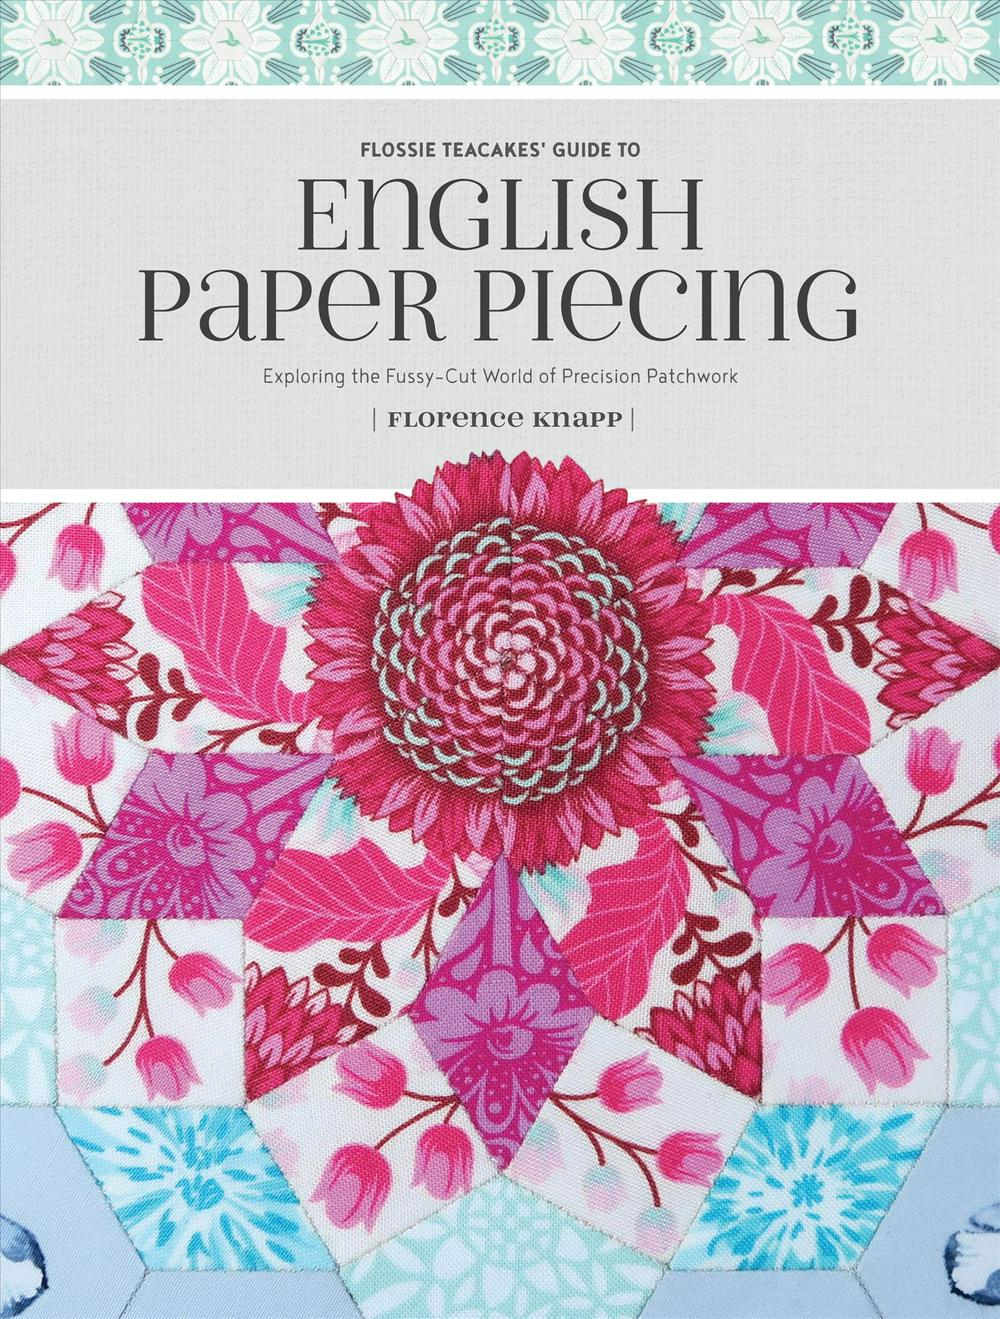 Flossie Teacakes' Guide to English Paper Piecing: Exploring the Fussy-Cut World of Precision Patchwork by Florence Knapp, ISBN: 9781440247927